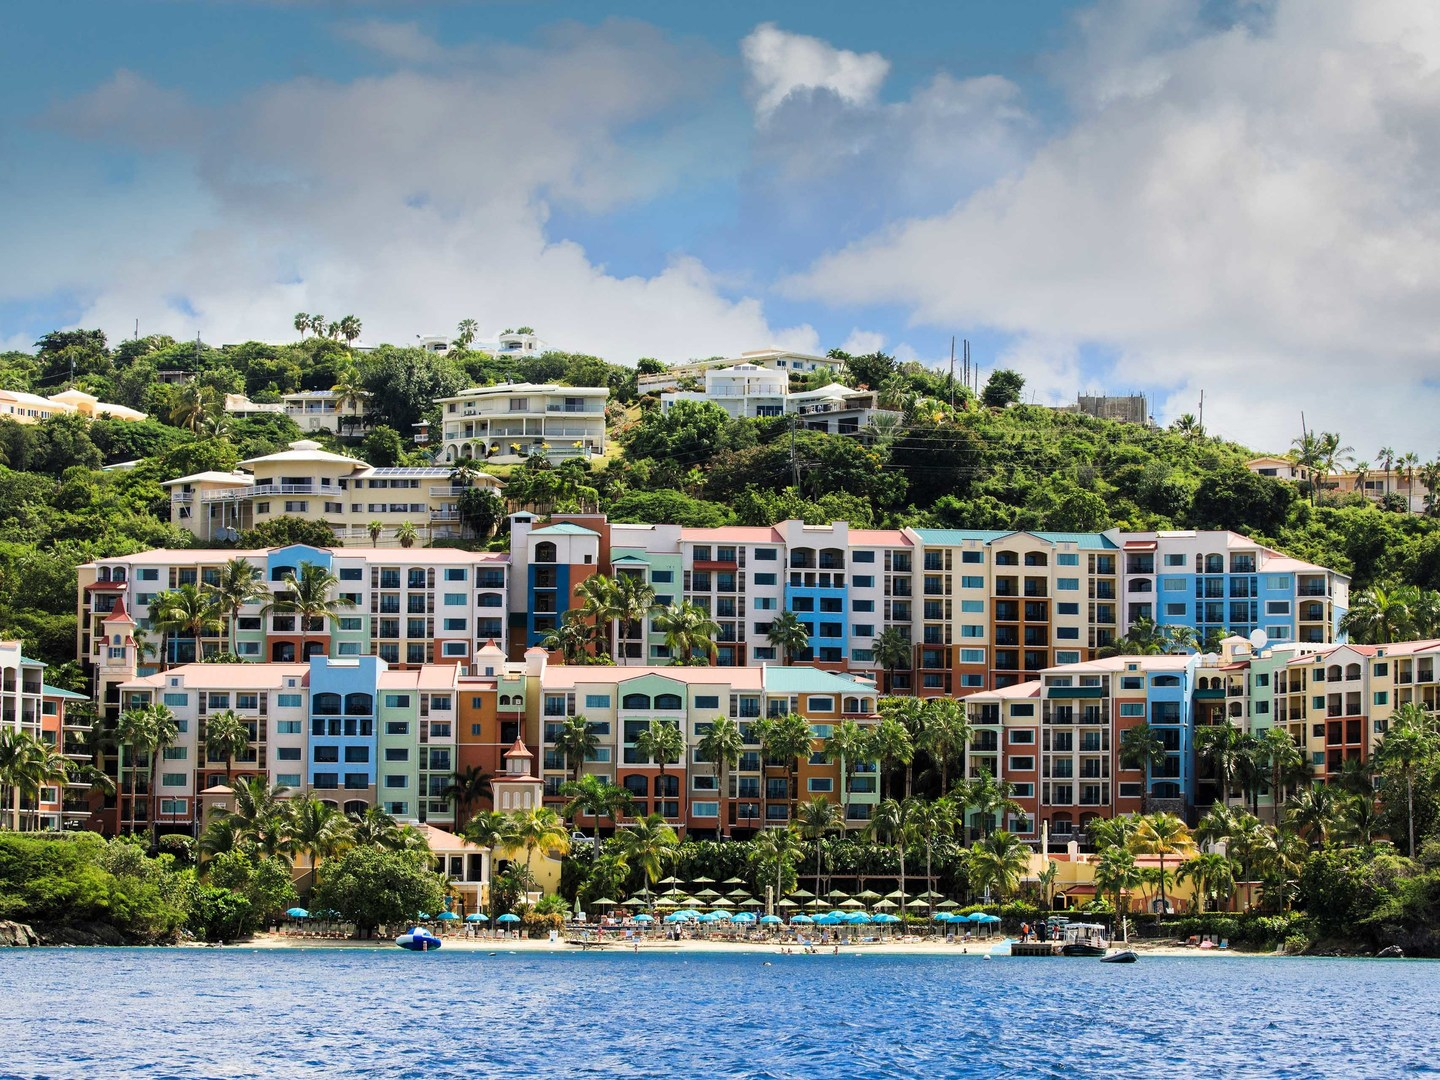 Marriott's Frenchman's Cove View from Bay. Marriott's Frenchman's Cove is located in St. Thomas, US Virgin Islands United States.